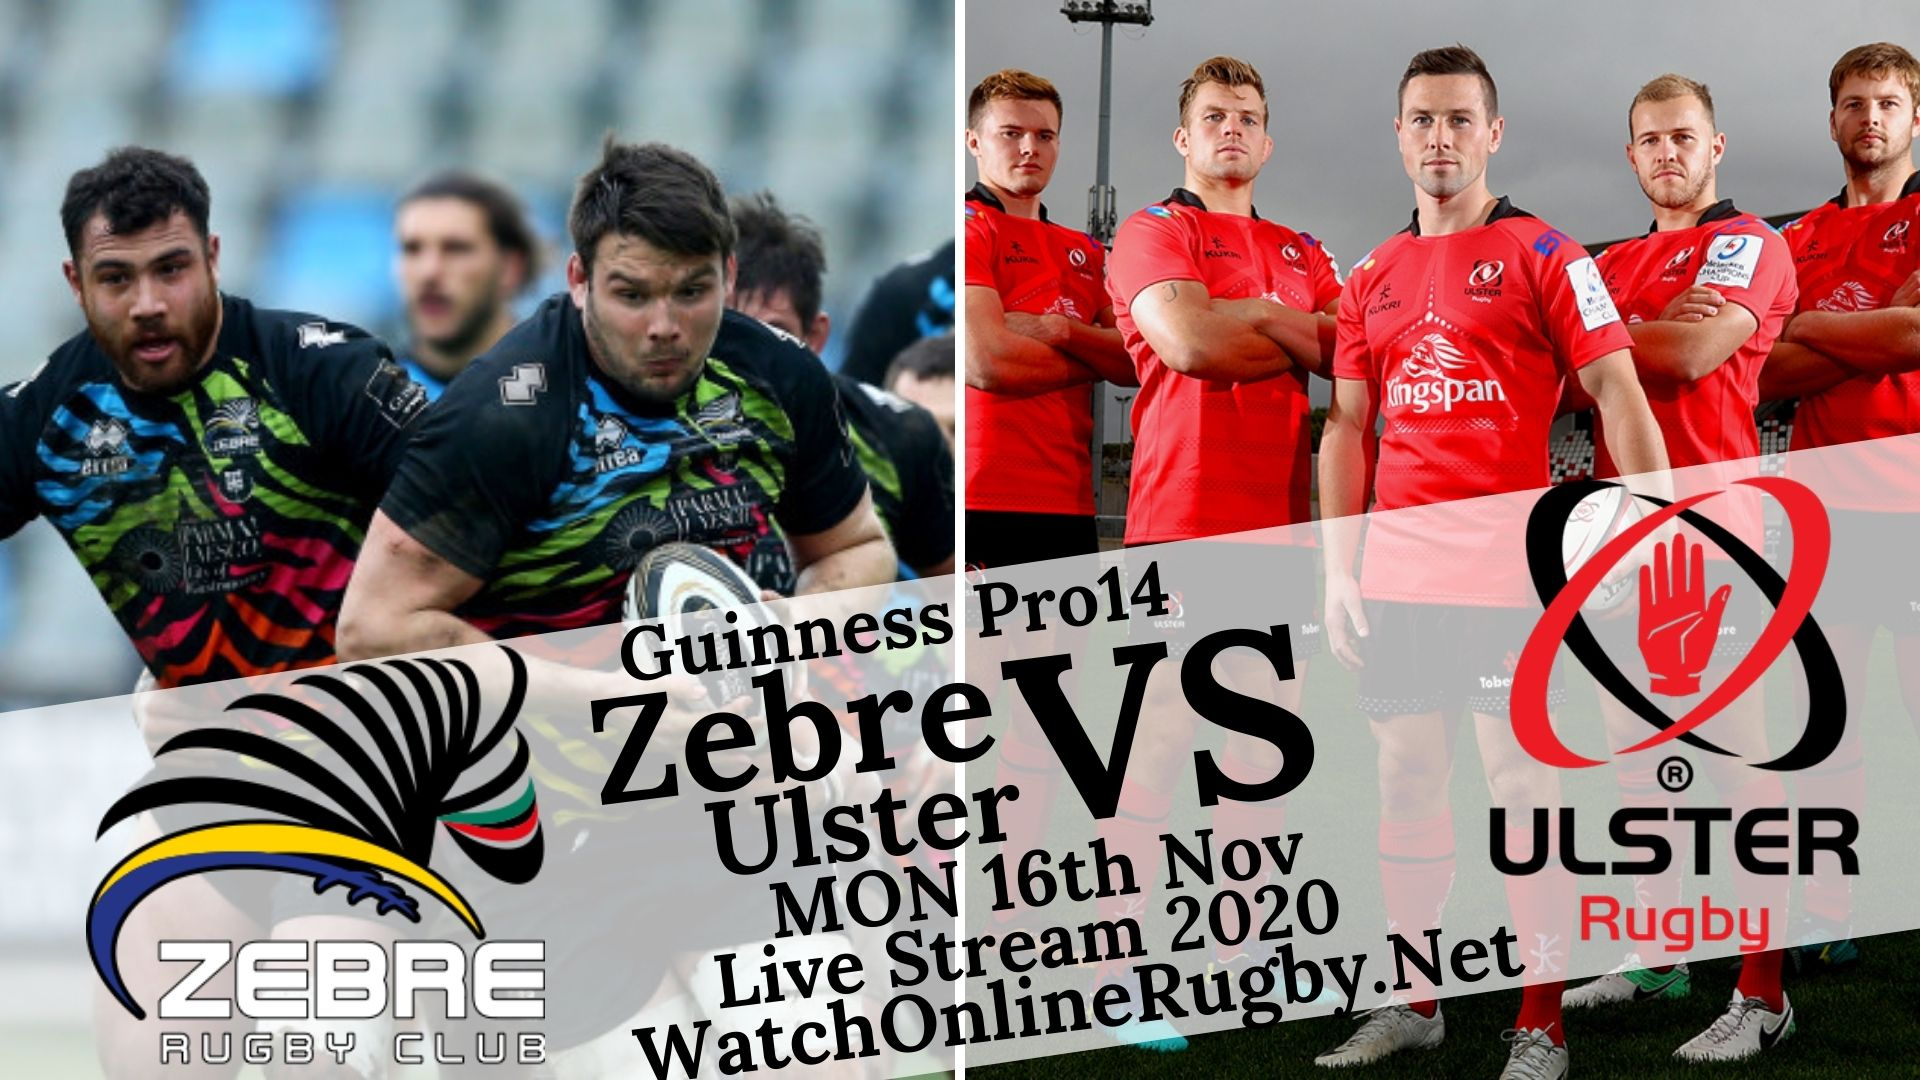 watch-zebre-vs-ulster-rugby-live